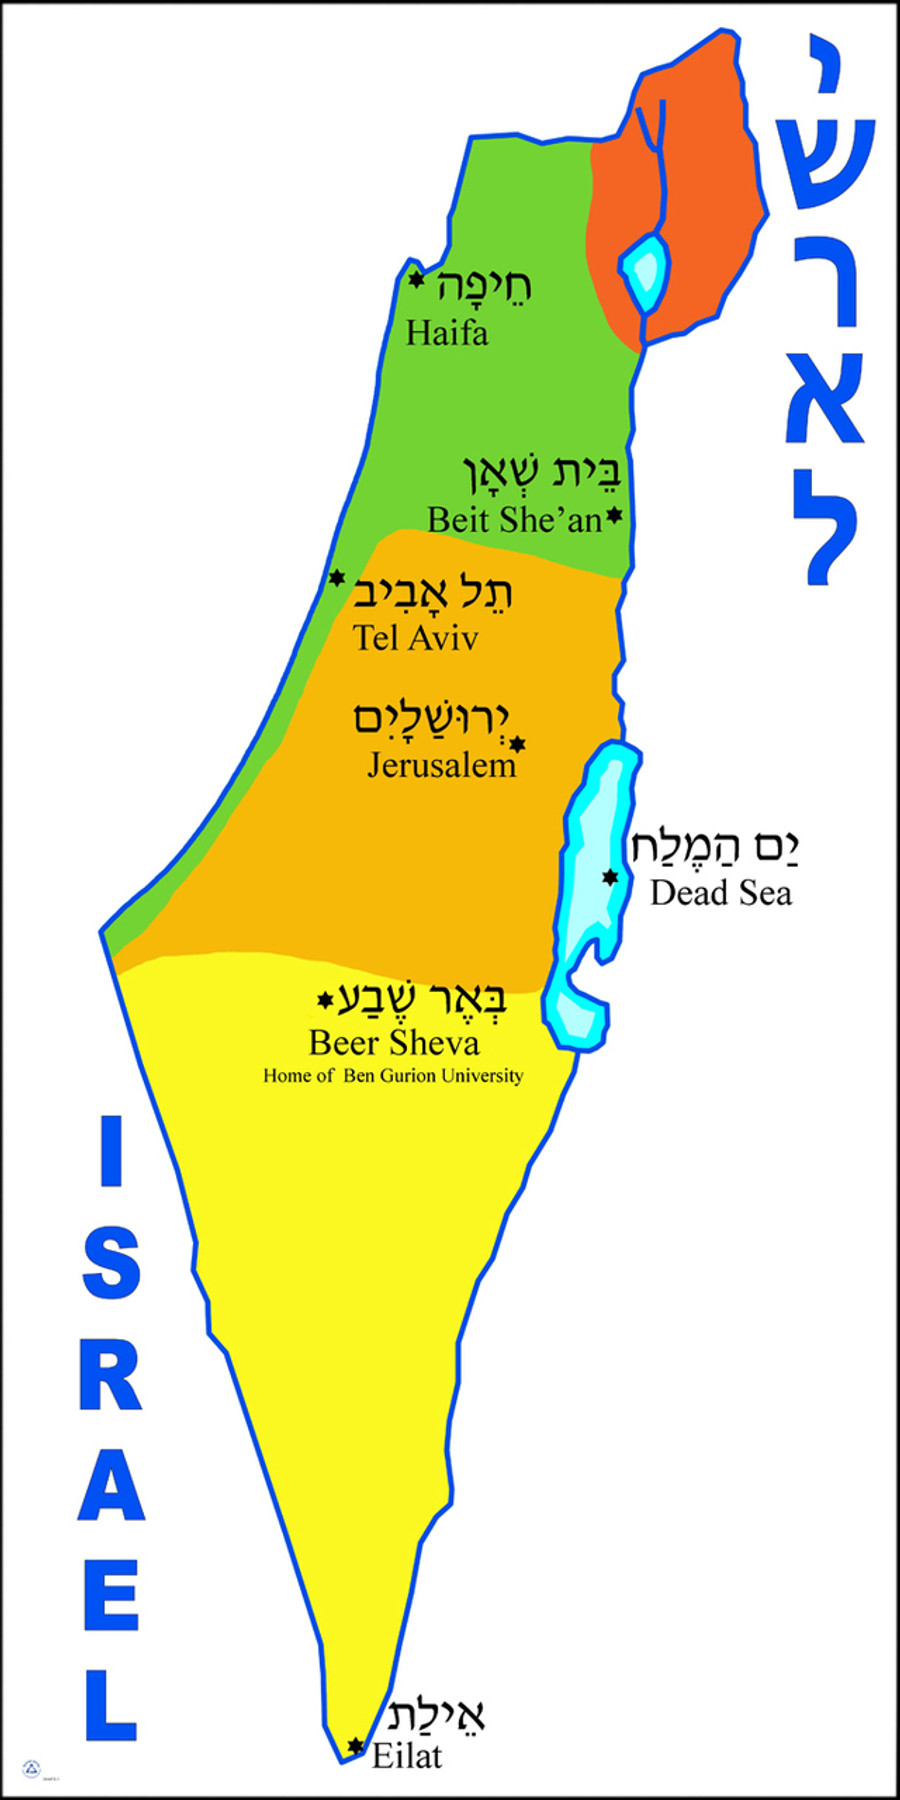 Israel Map with Cities - JECC Marketplace